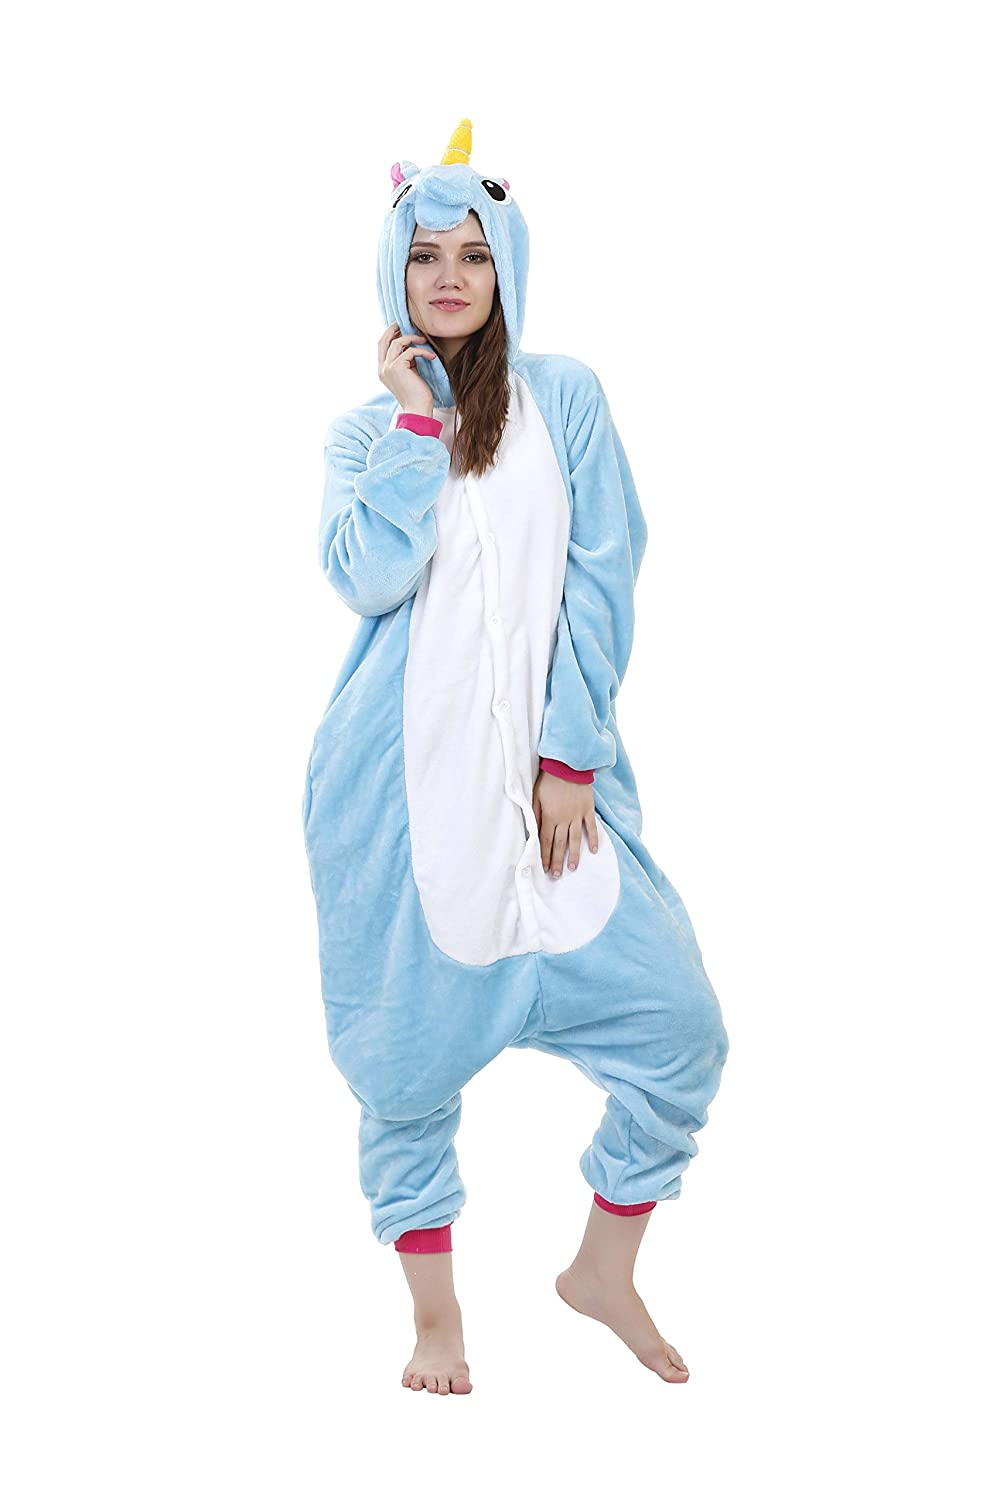 Funny Gifts - Unicorn Onesie Dress